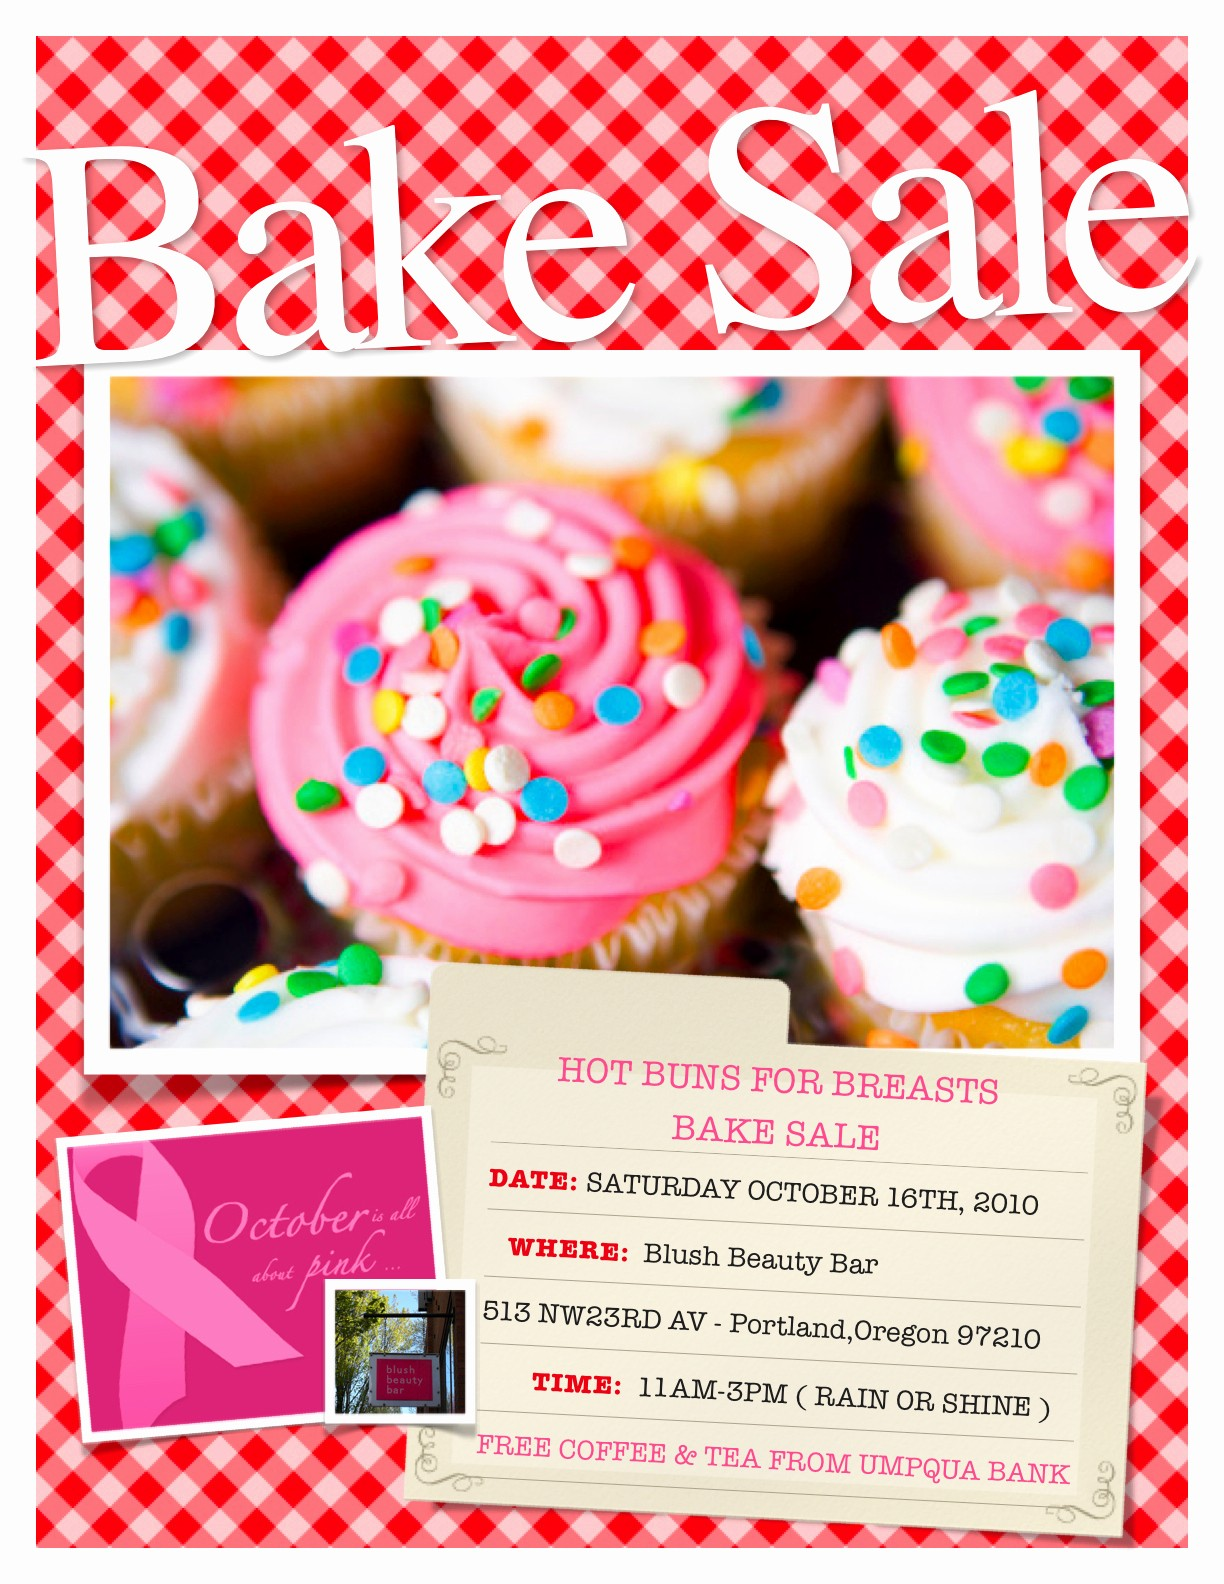 Bake Sale Flyer Template Word Inspirational Hot Buns for Breats Bake Sale